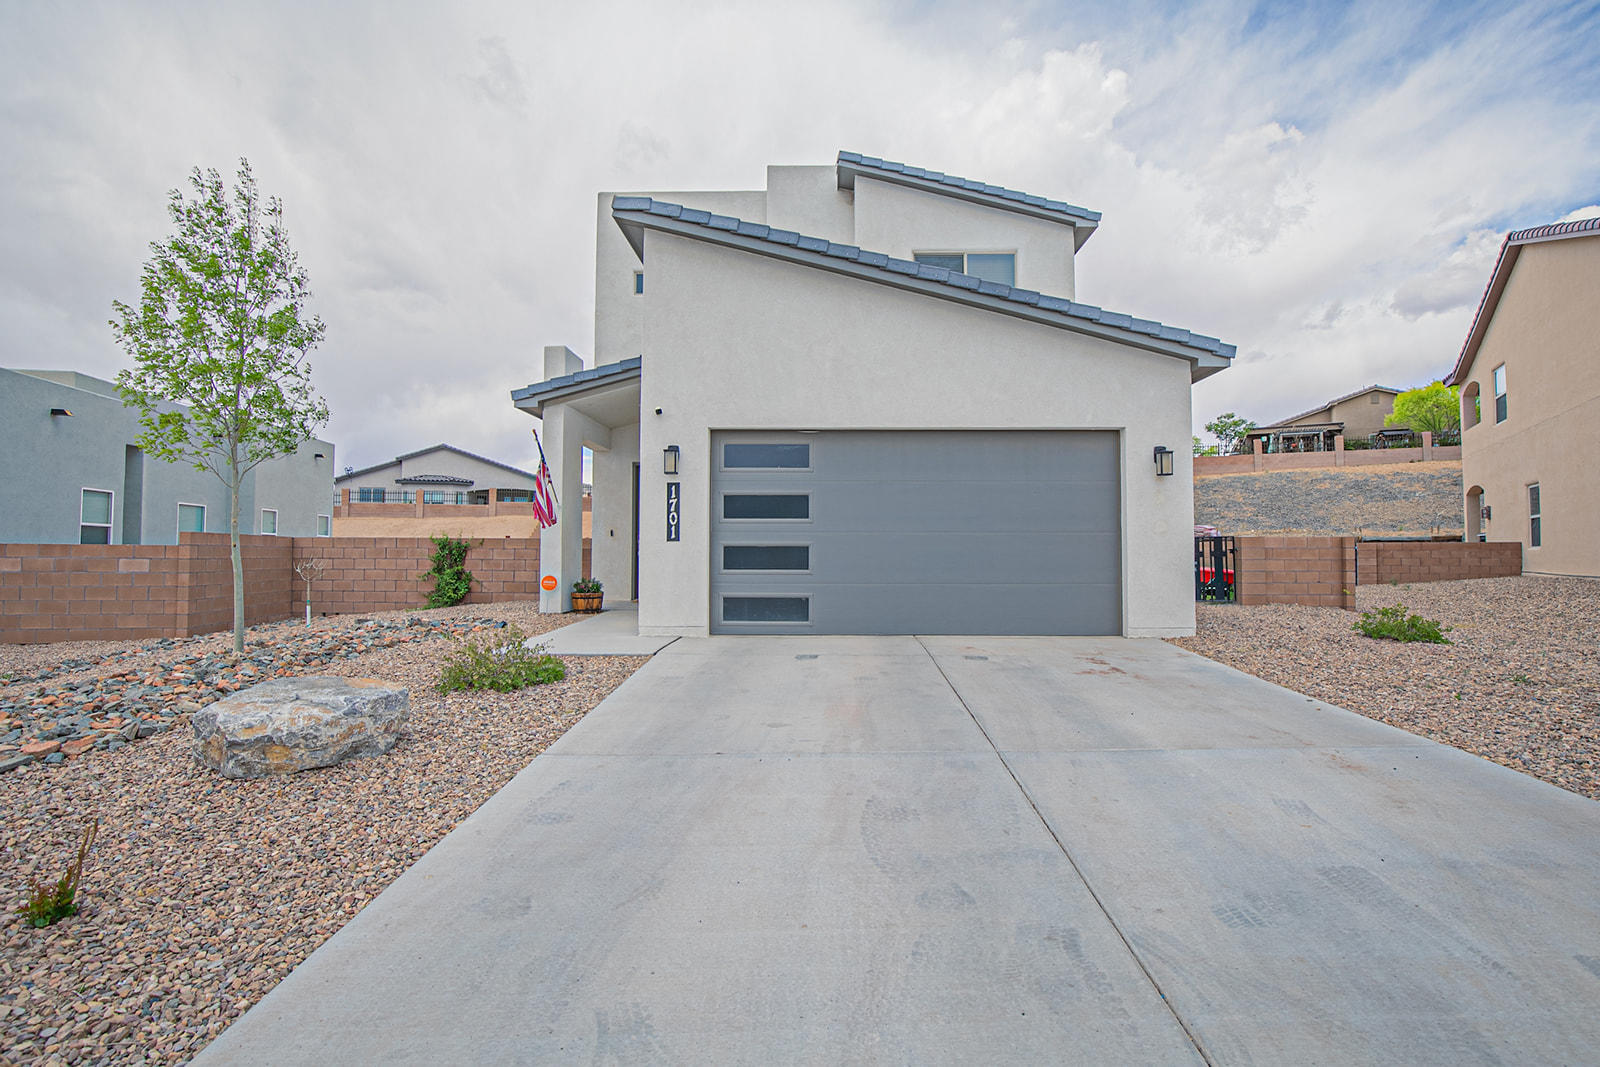 Your dream home awaits!  Don't miss out on an opportunity to own this practically new and beautiful home.  This home boasts several upgraded features including the premier cabinet and appliance packages.  Call today to schedule your showing for this weekend!